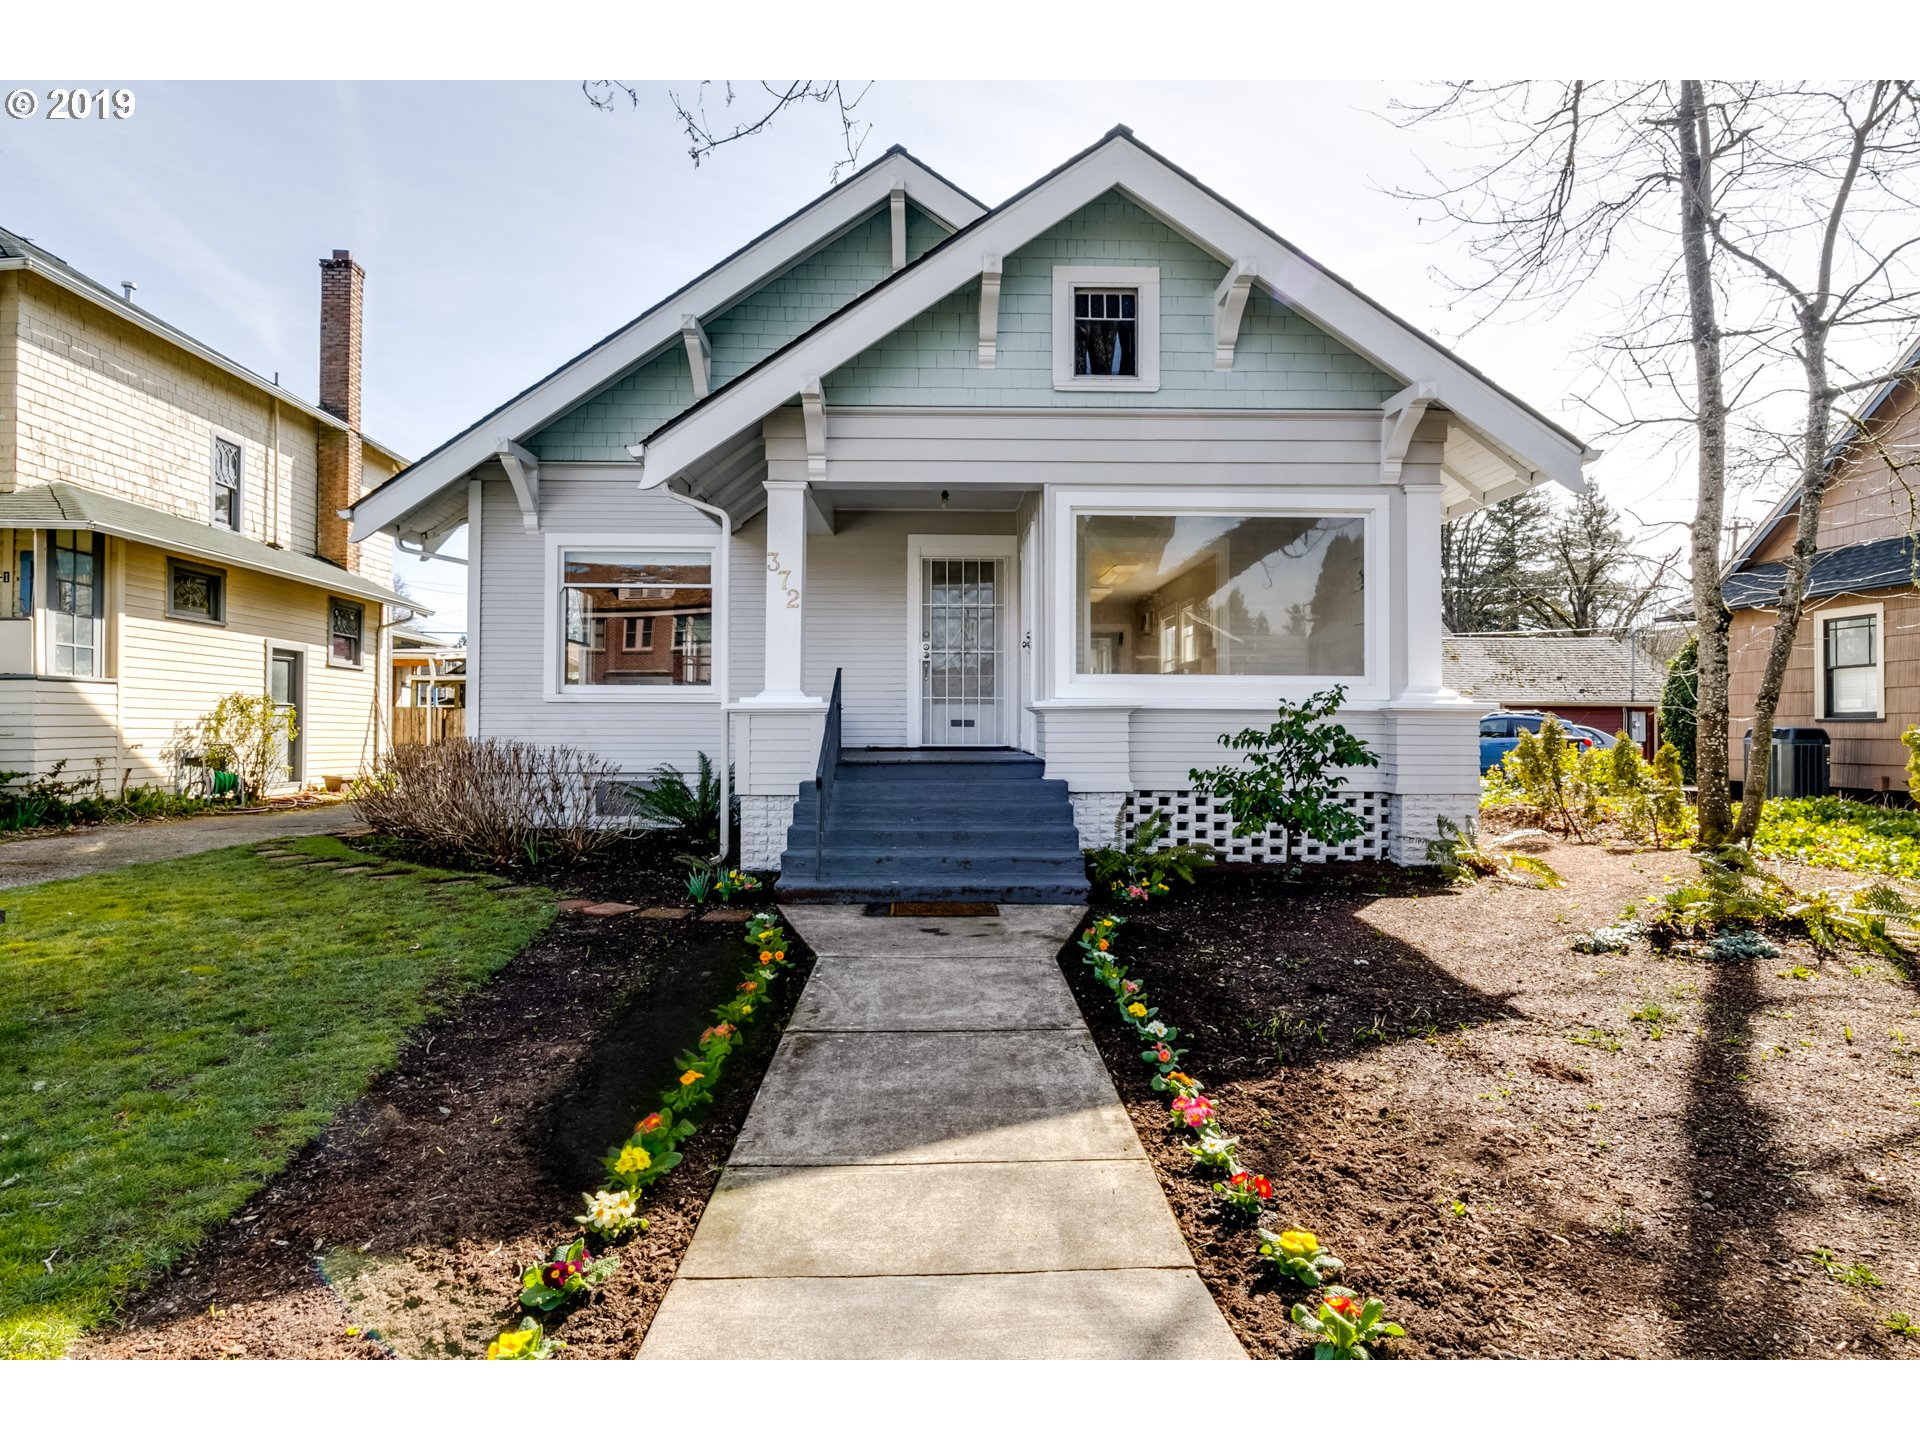 Photo of 372 W BROADWAY Eugene OR 97401